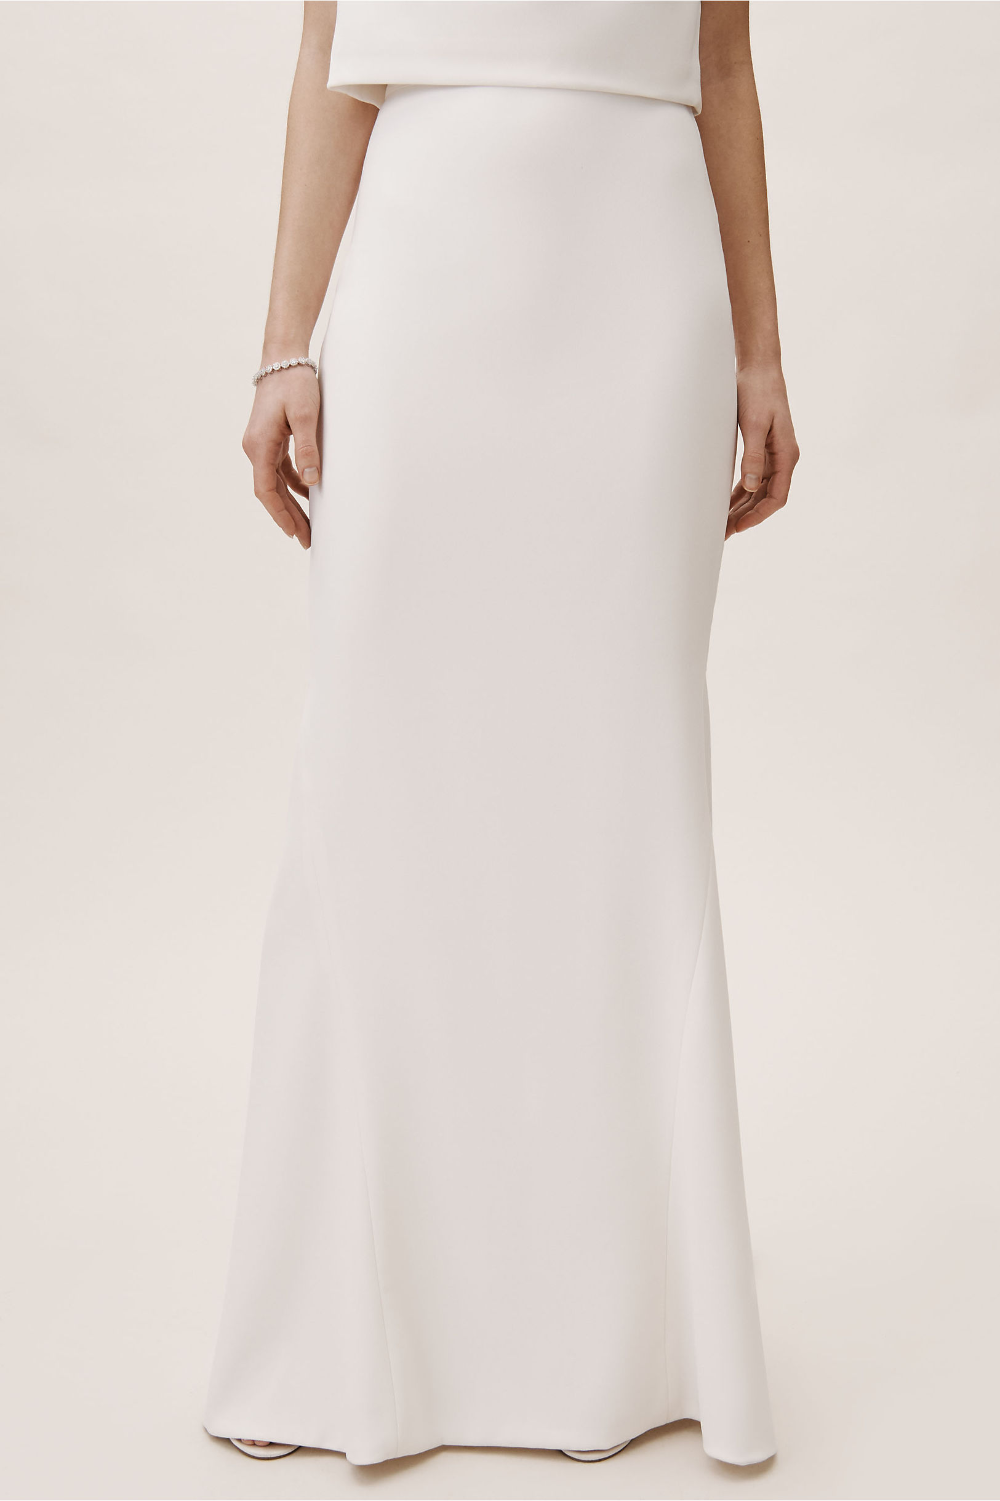 BHLDN Amy Kuschel Park Avenue Skirt